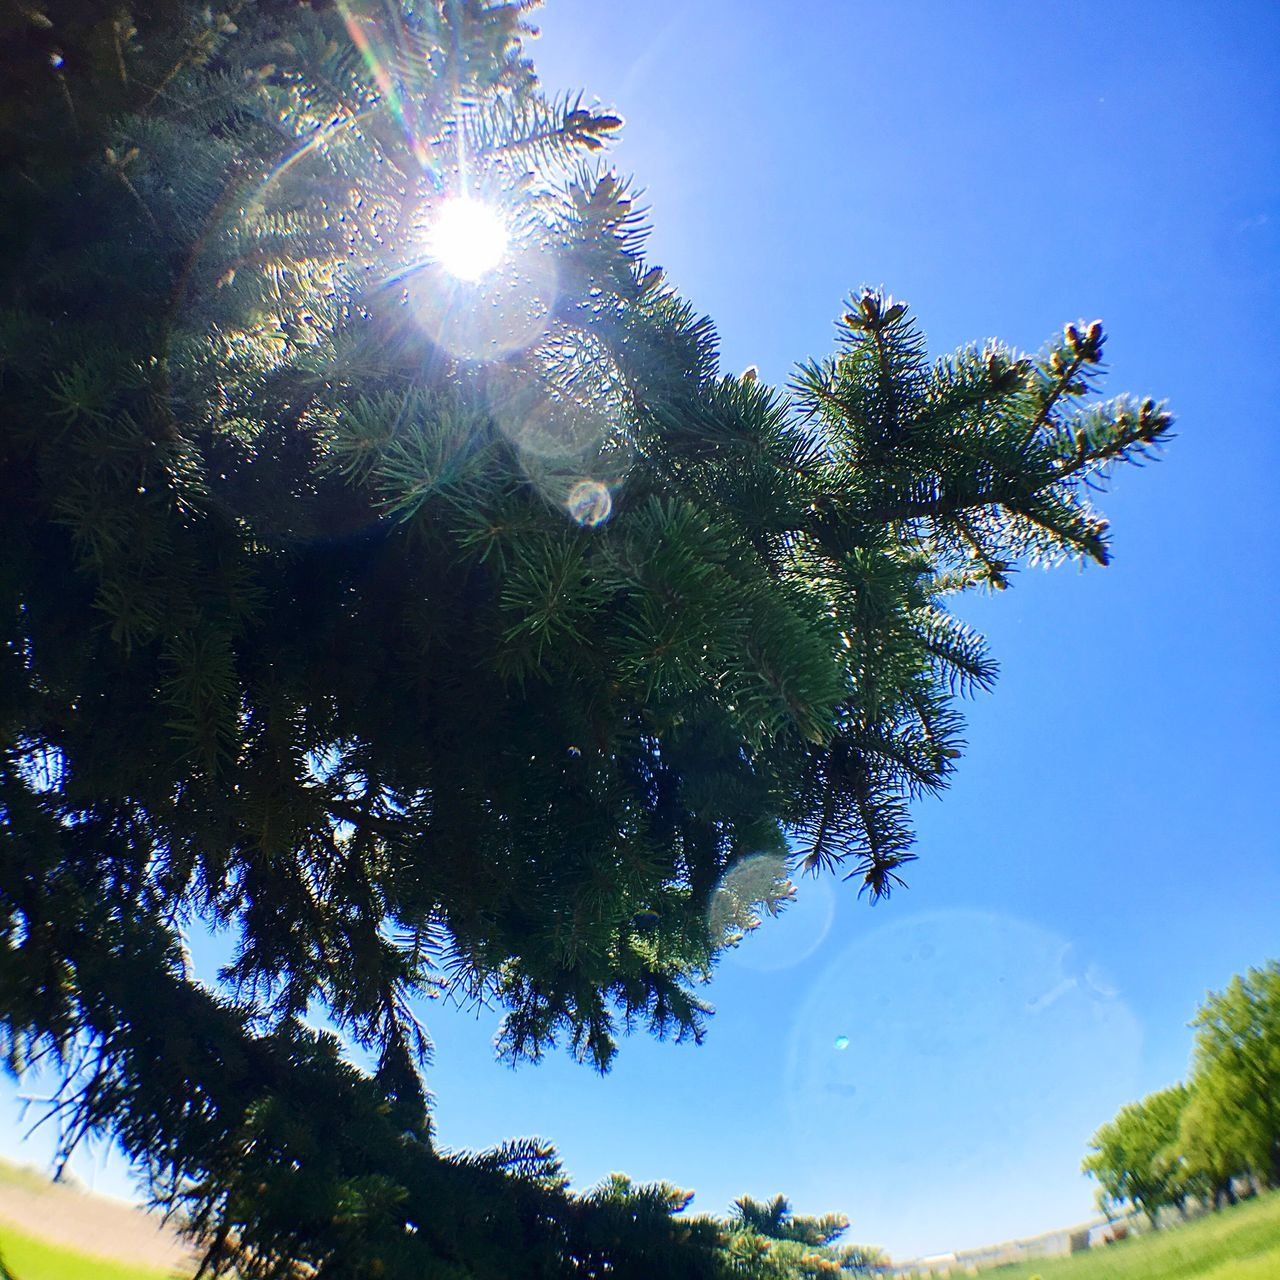 Tree Low Angle View Growth Sun Lens Flare Nature Sky No People Sunlight Day Beauty In Nature Branch Leaf Clear Sky Outdoors Hope Blue Sky Minneapolis Evergreen